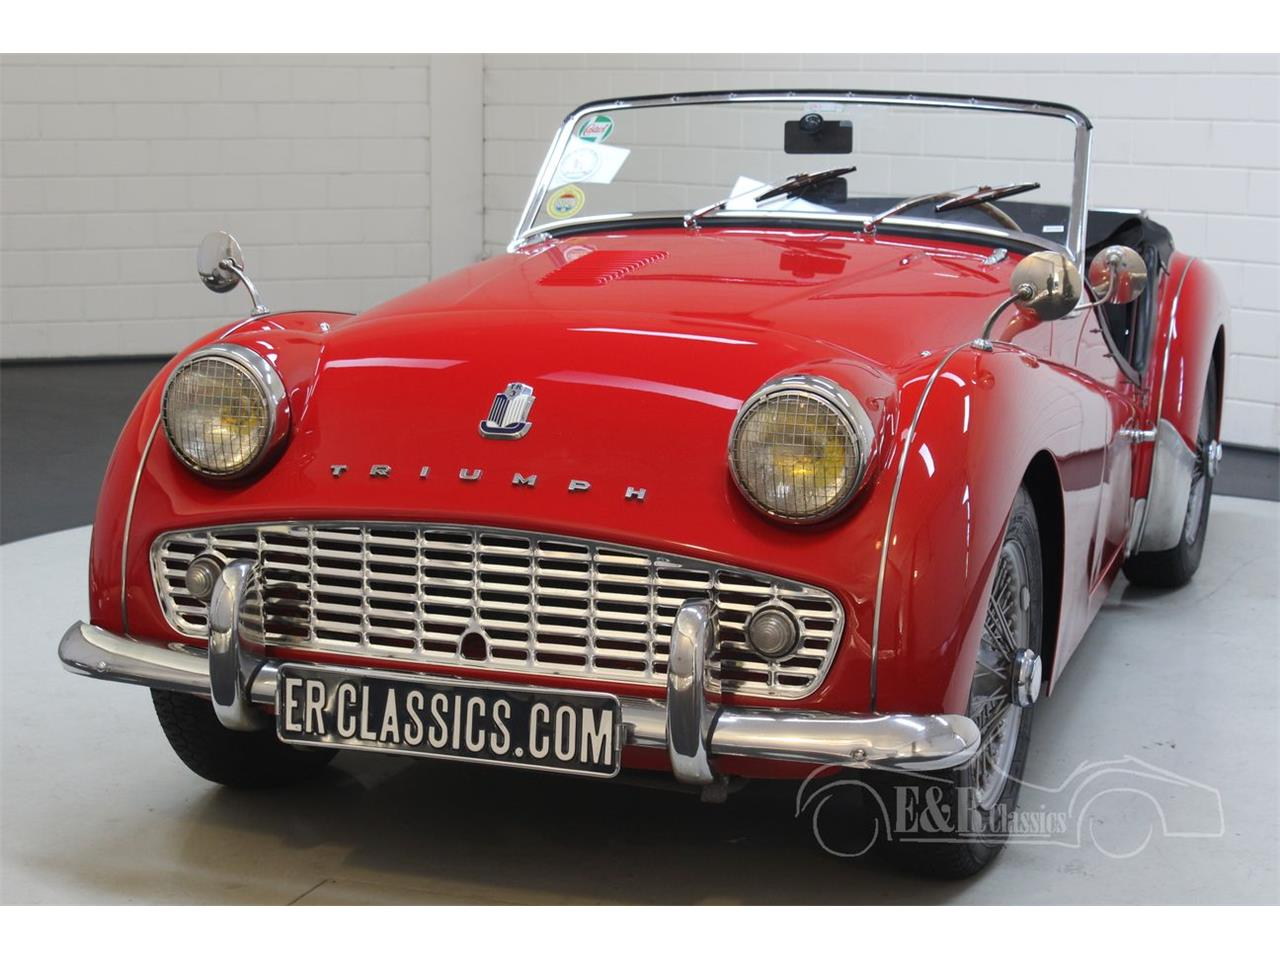 Large Picture of 1960 Triumph TR3A - $41,800.00 Offered by E & R Classics - PLXB